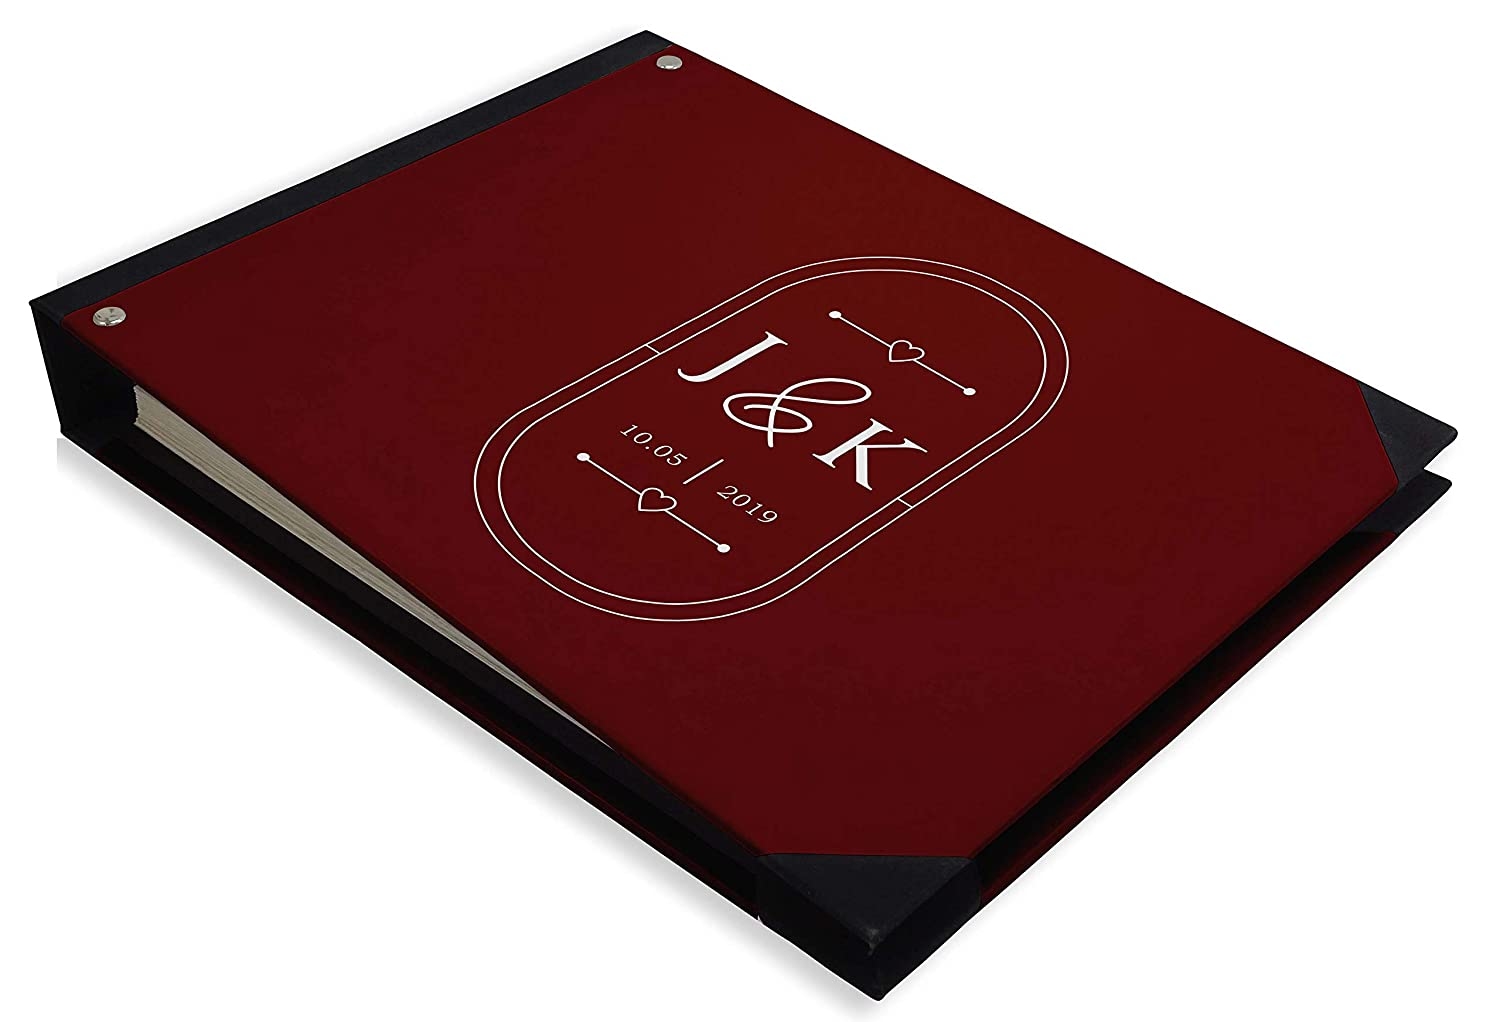 Darling Souvenir Red Heart /& Frame Wedding Guest Book Hardbound Guest Sign-in Book Guest Registry Guestbook-7 x 9 Inches